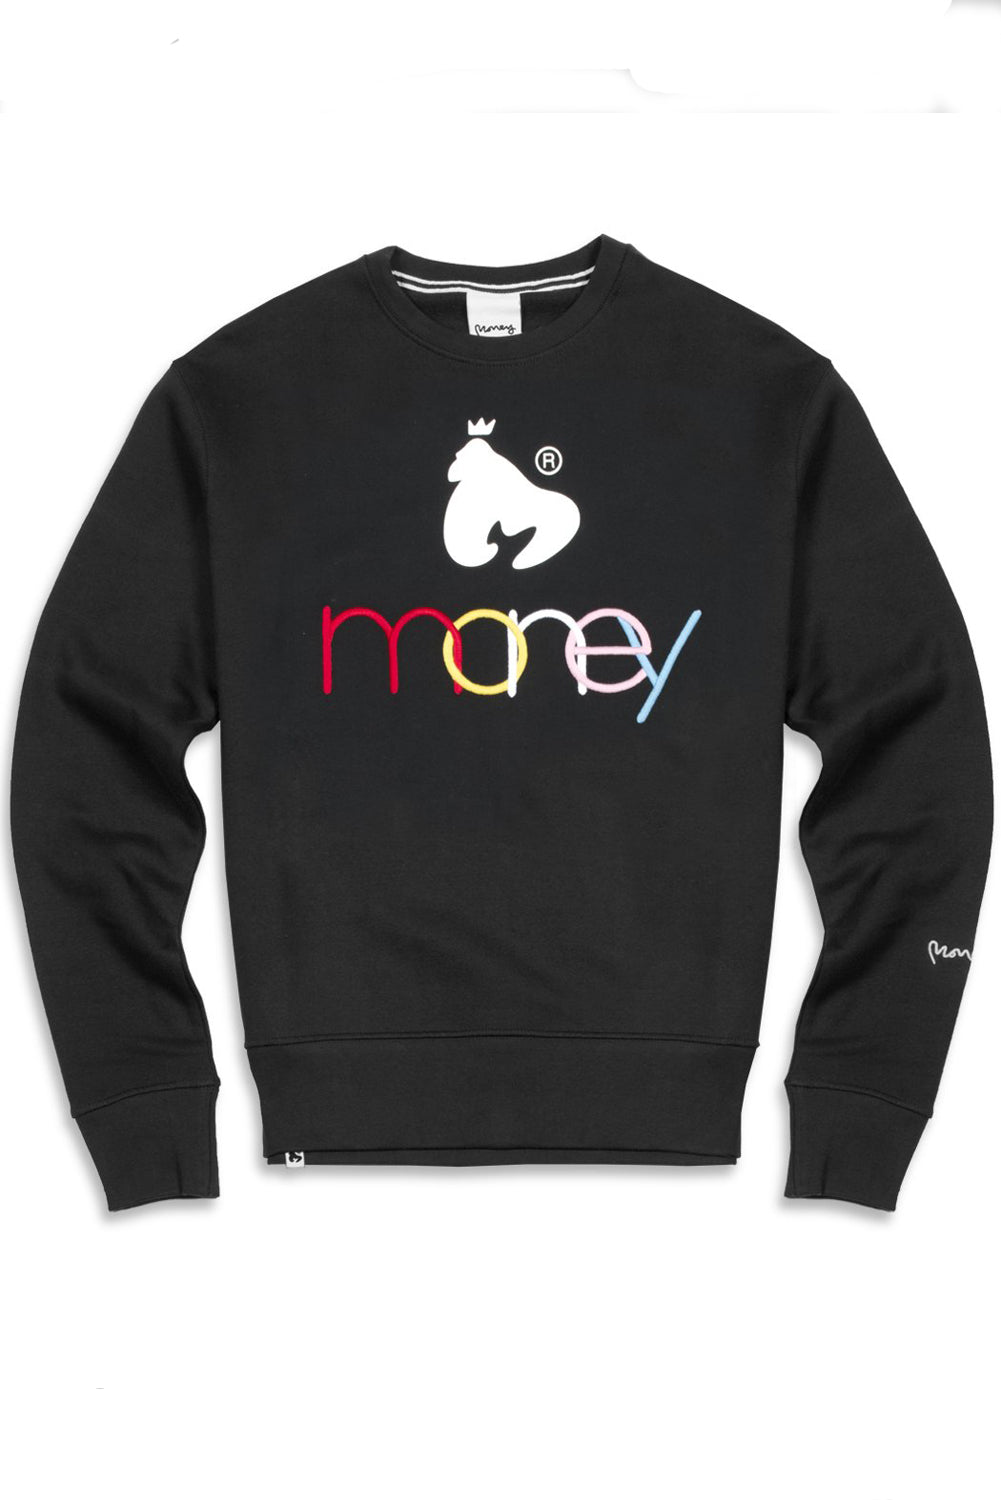 Money United Colours of Money Sweater - Black